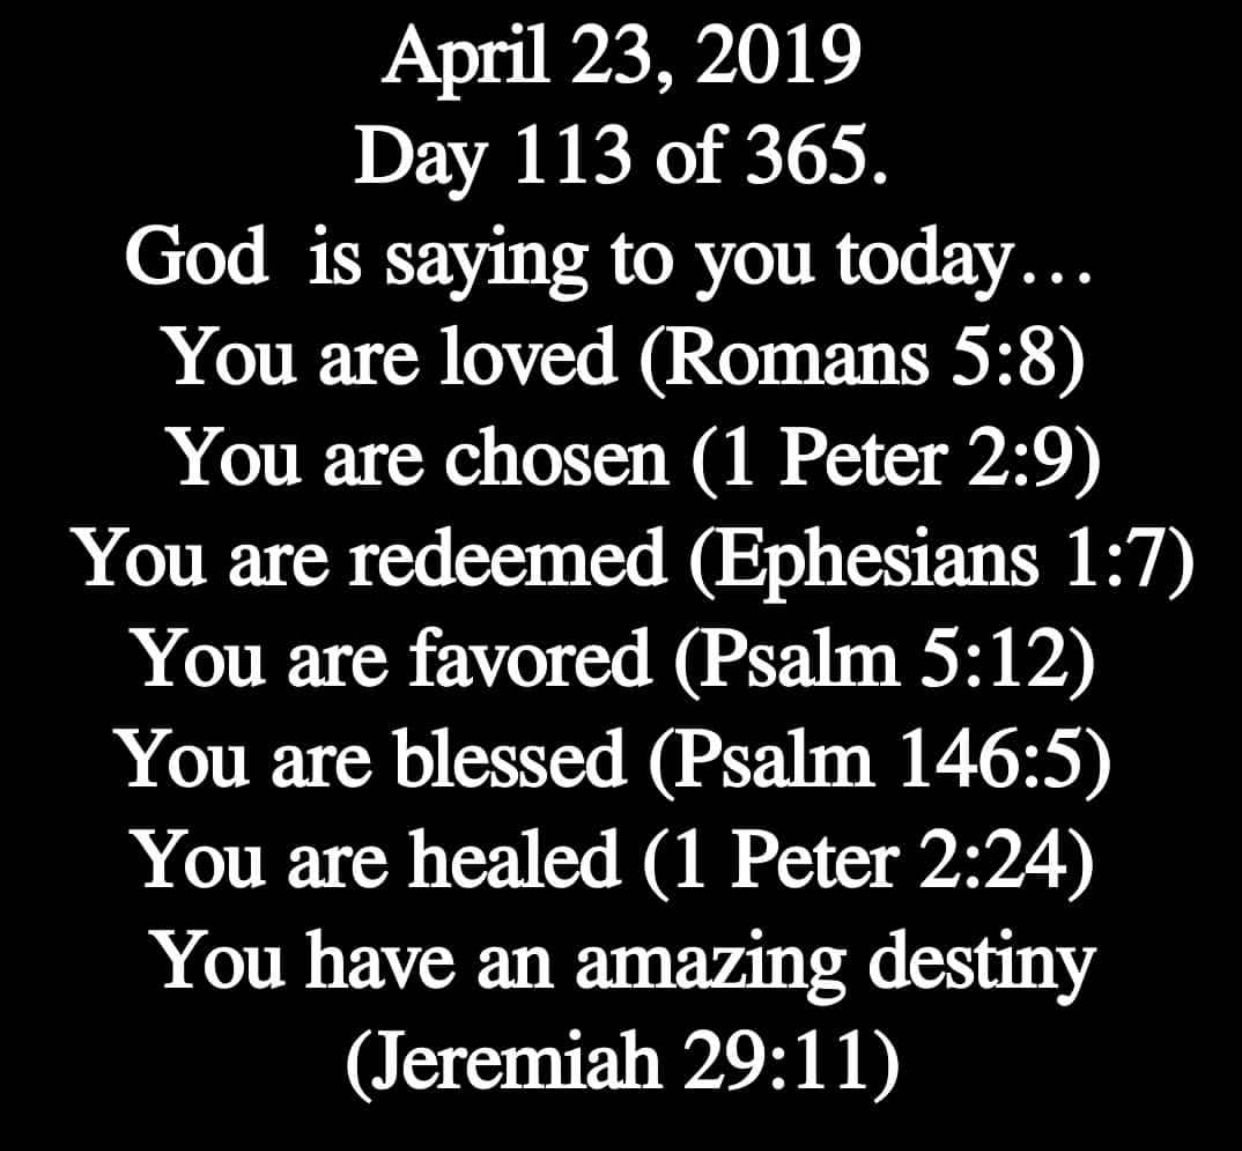 I Am Loved Chosen Redeemed Favored Blessed Healed And I Have